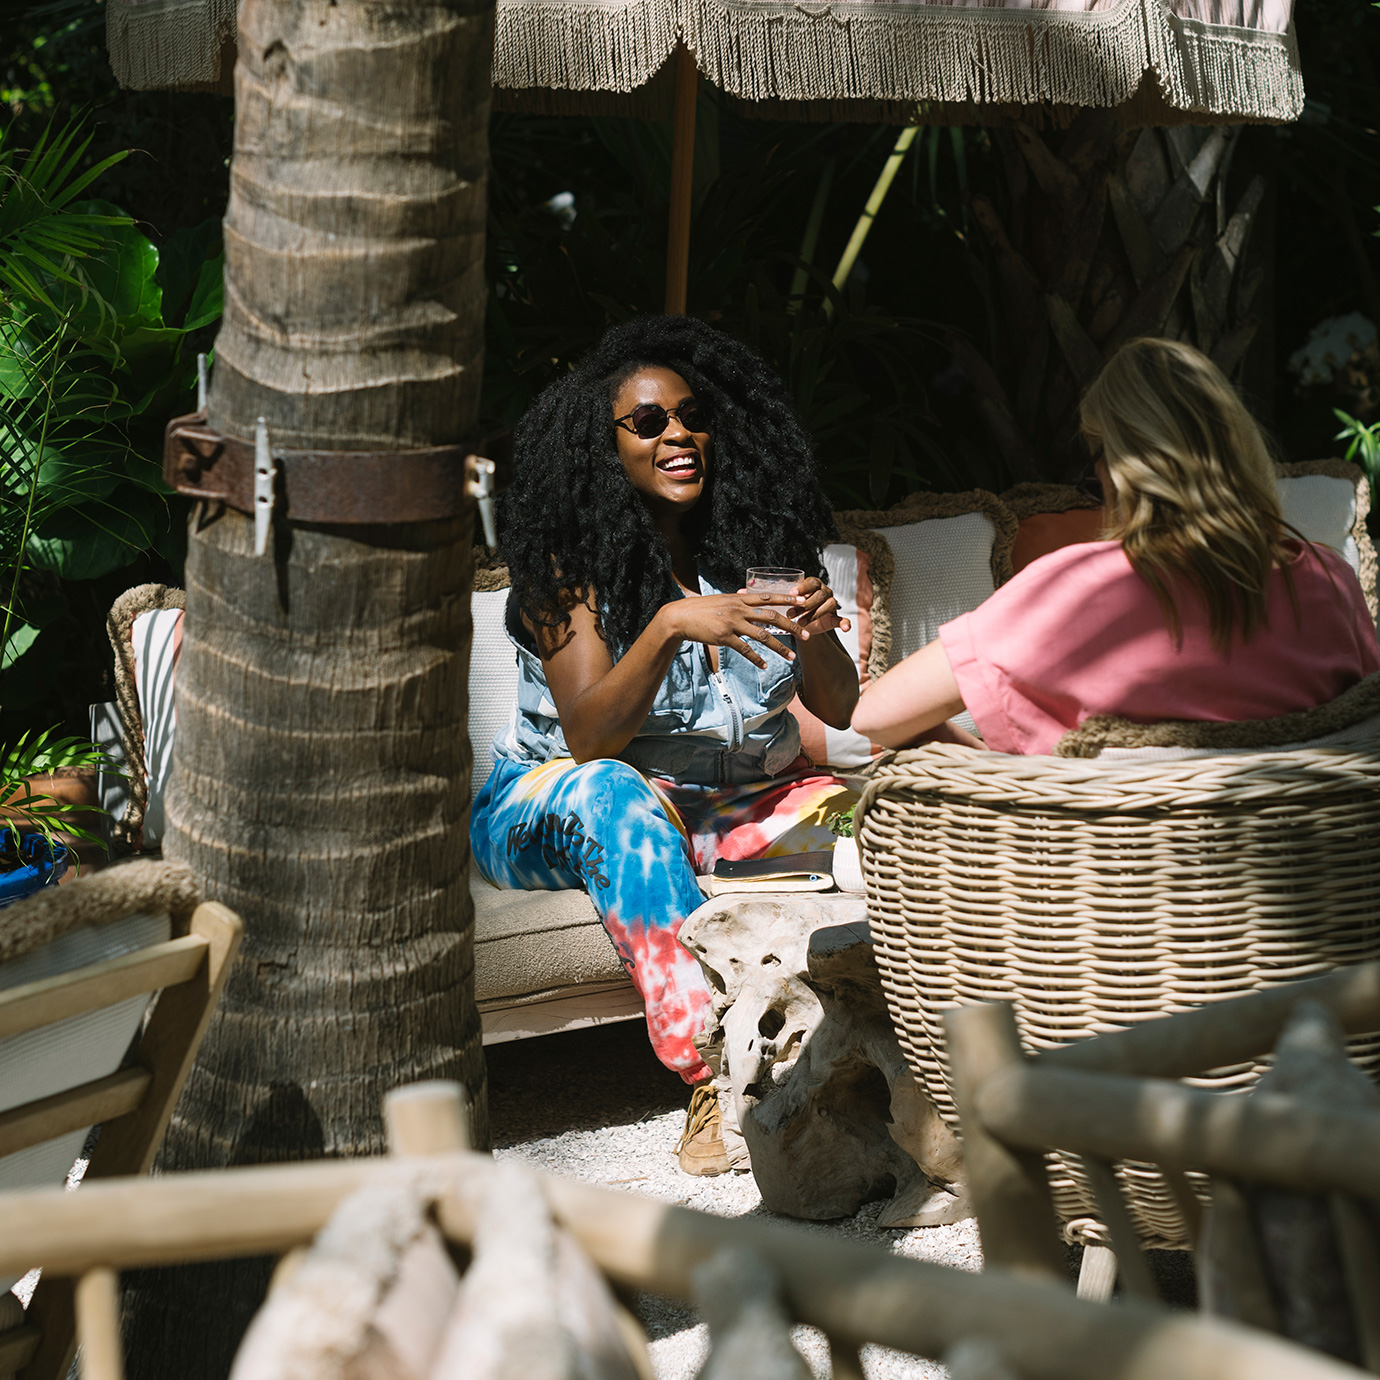 Two women chatting in a tree-shaded bar.